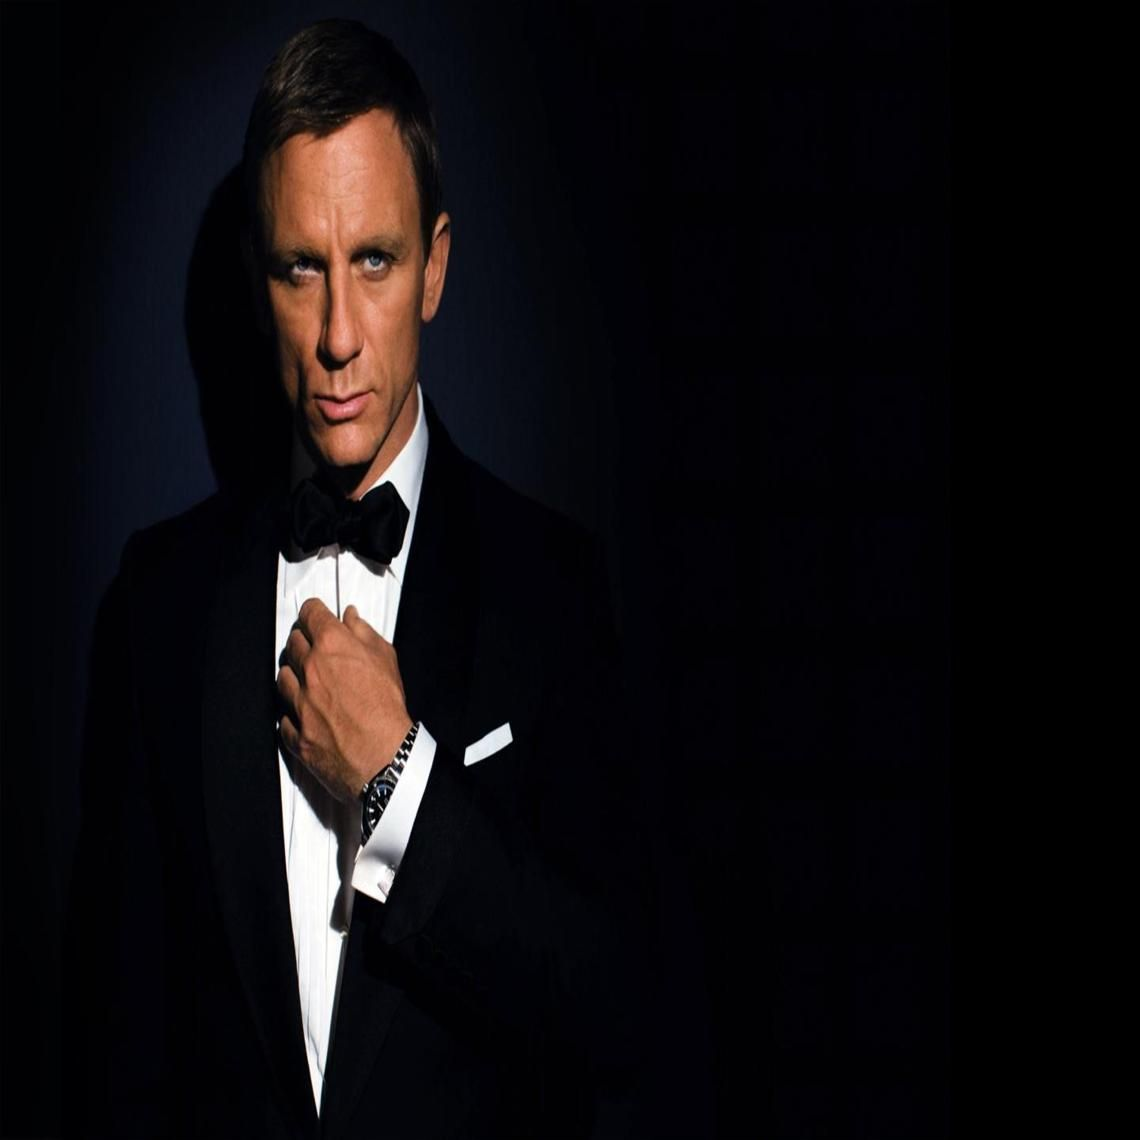 james bond | wallpaper | pinterest | james bond and rock